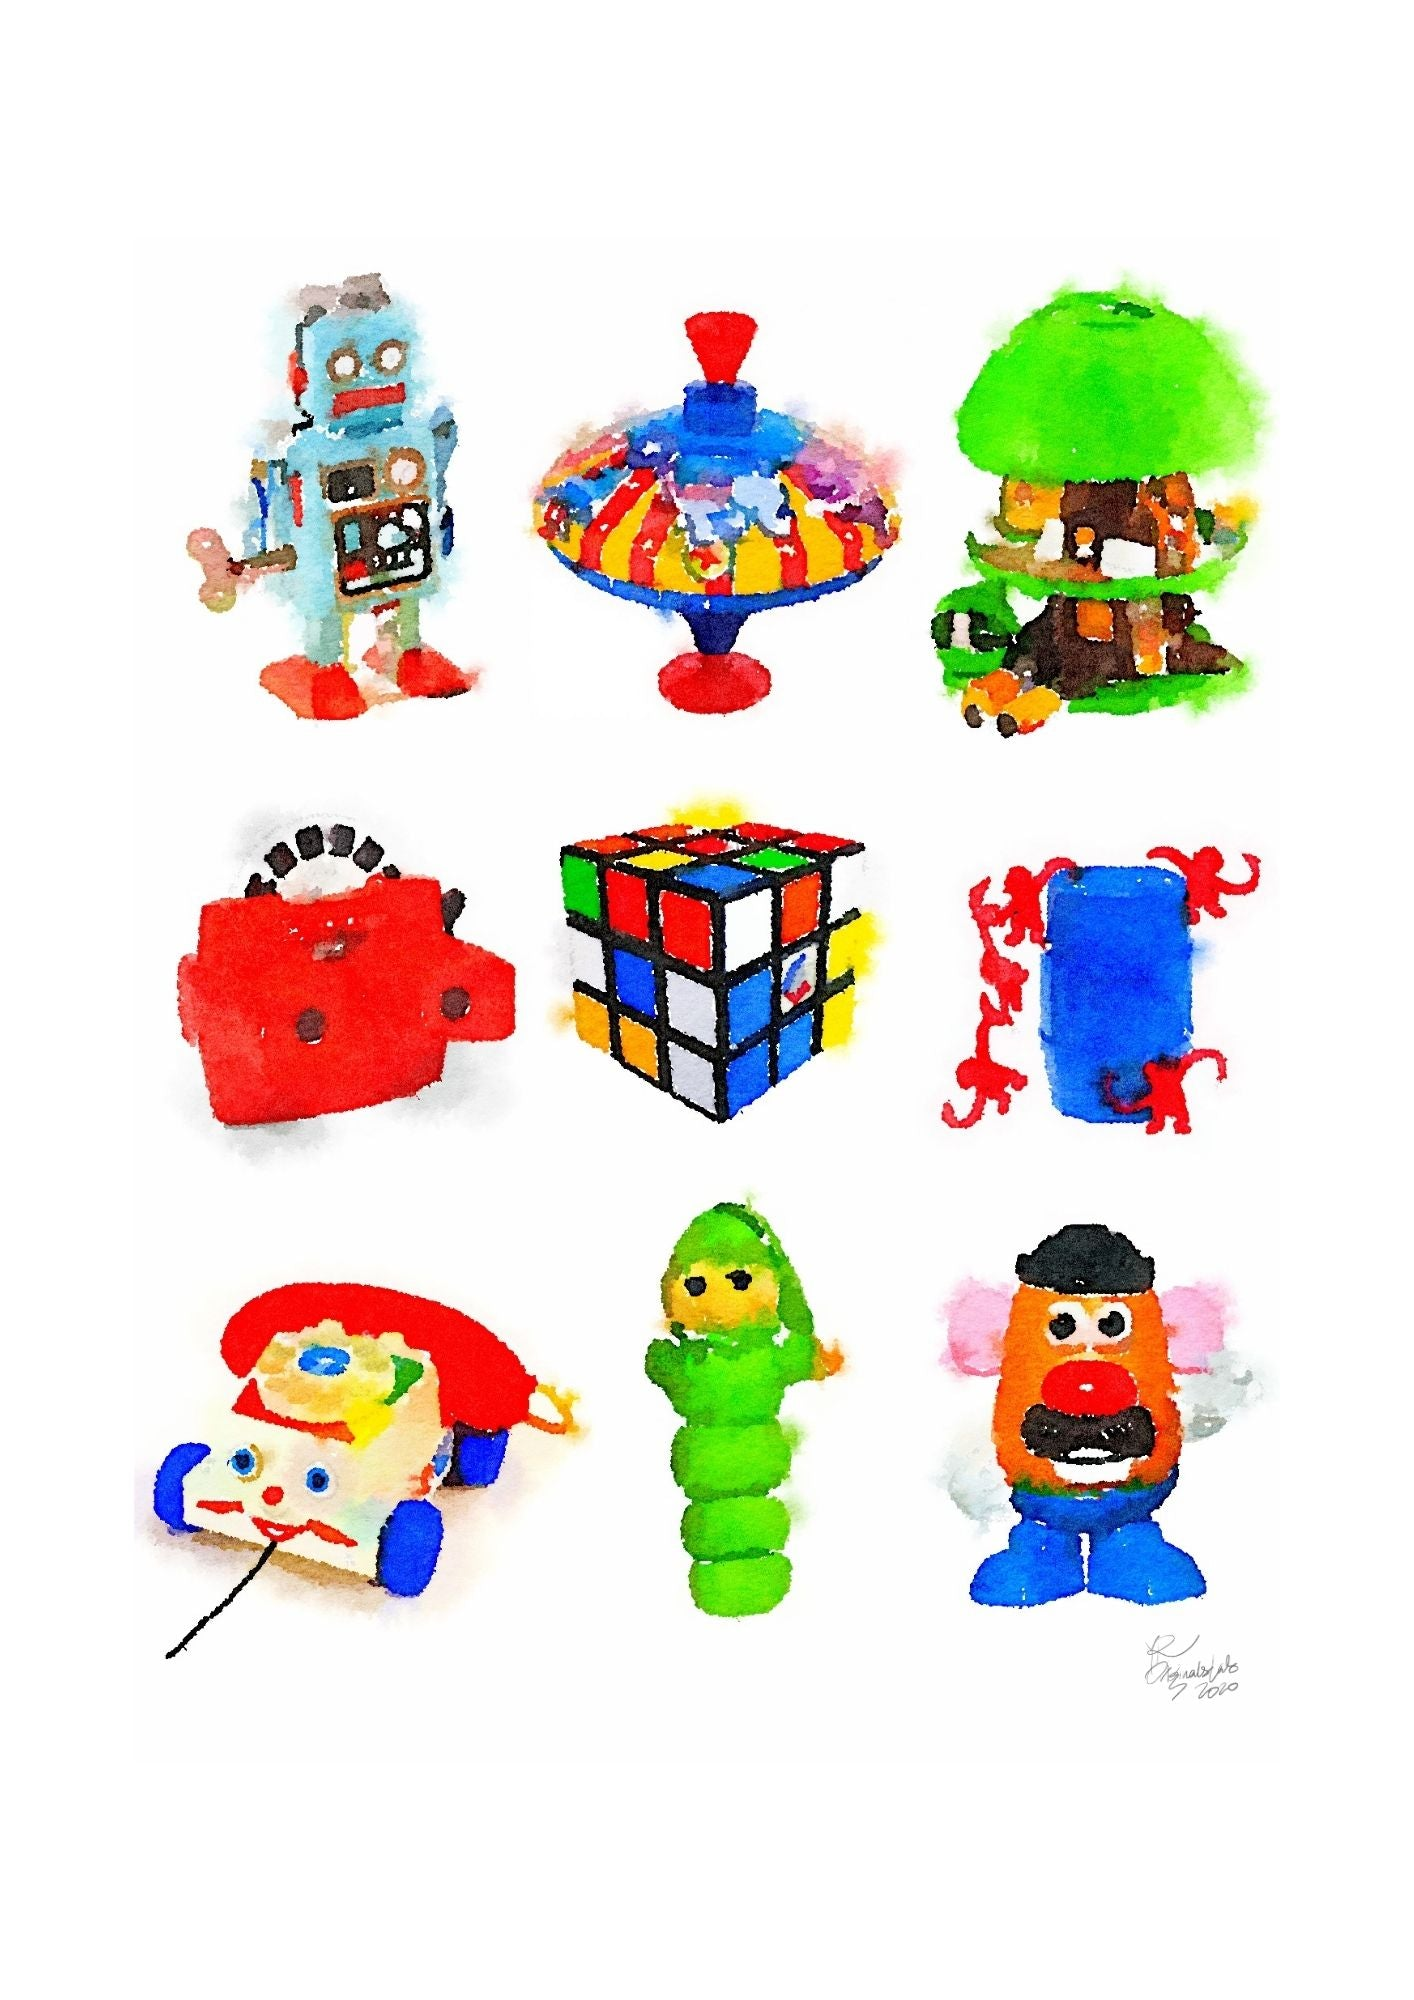 Retro Toys Digital Print